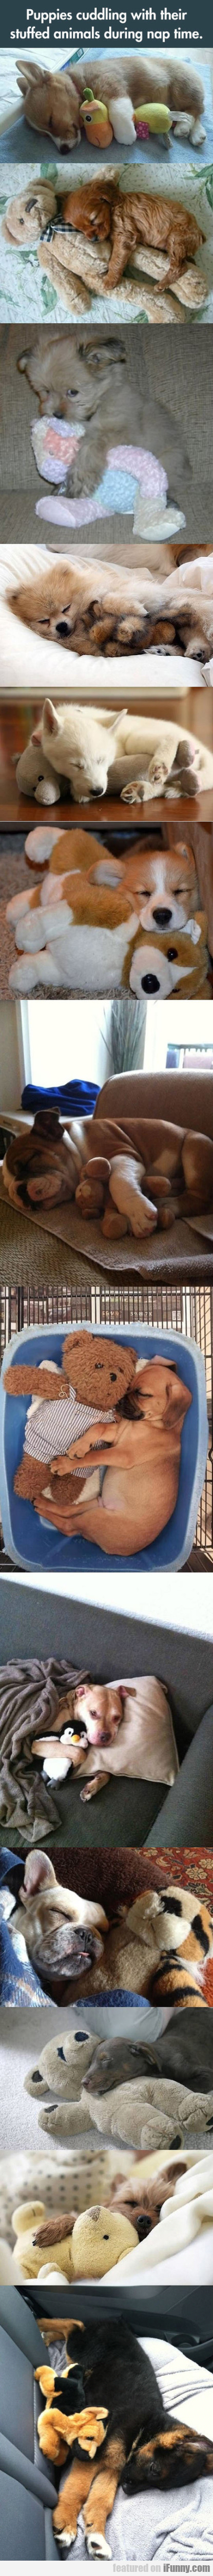 Puppies Cuddling With Their Stuffed Animals During